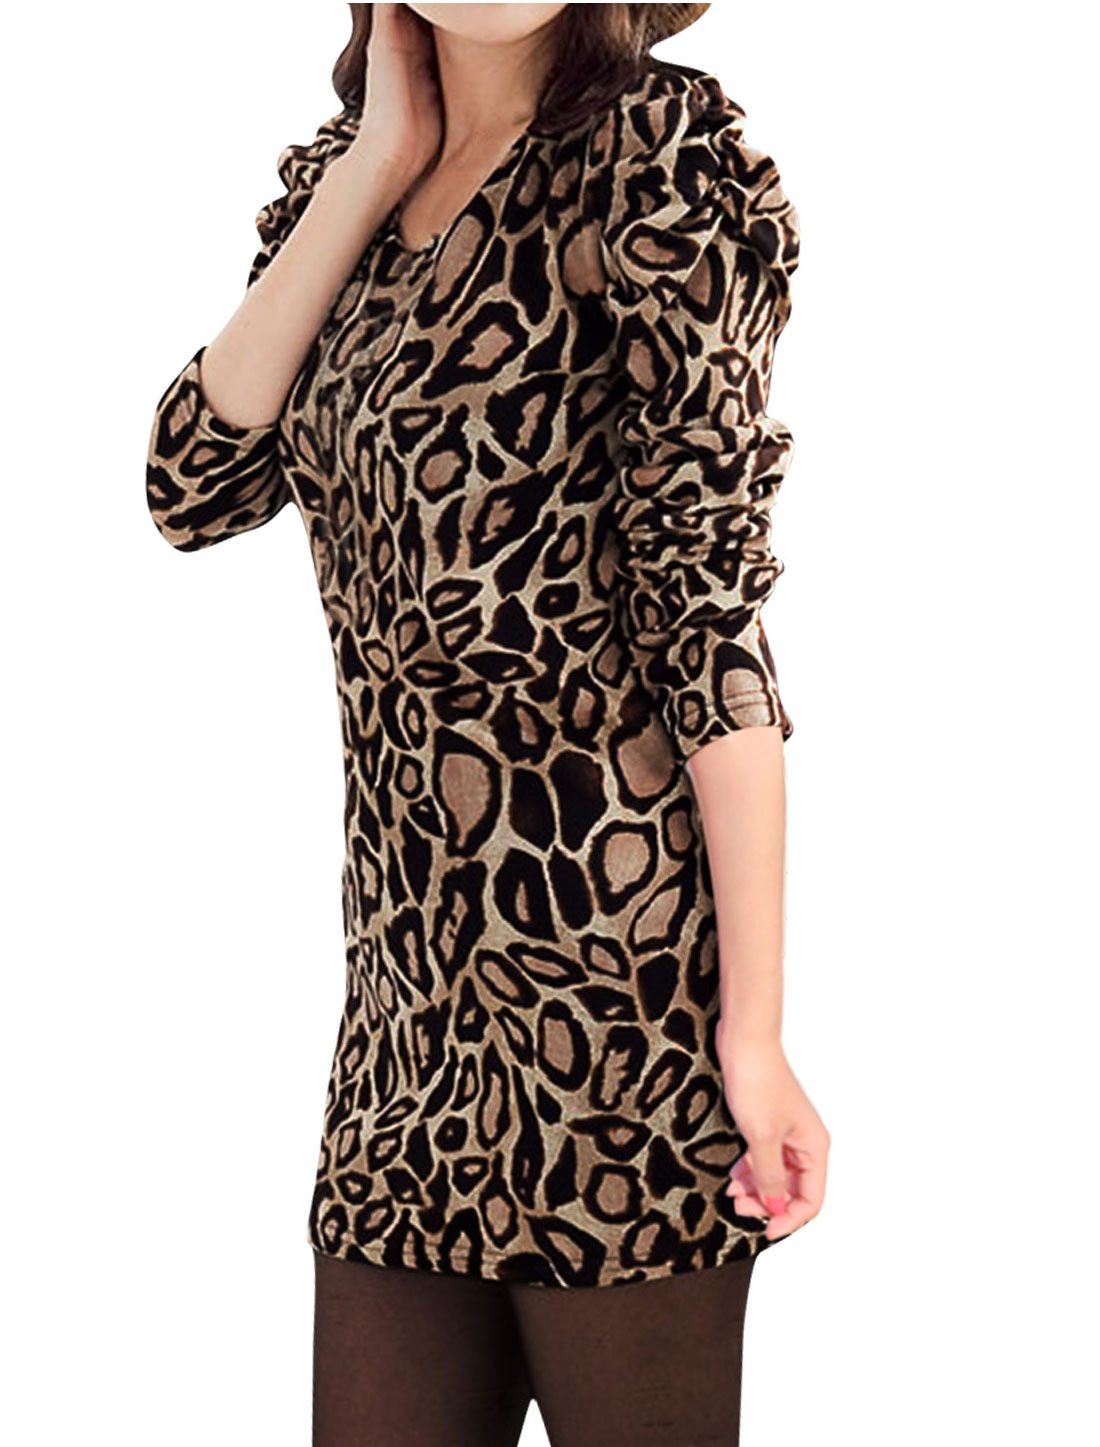 Ladies Coffee Color Puff Sleeves Leopard Prints Tunic Shirt XS